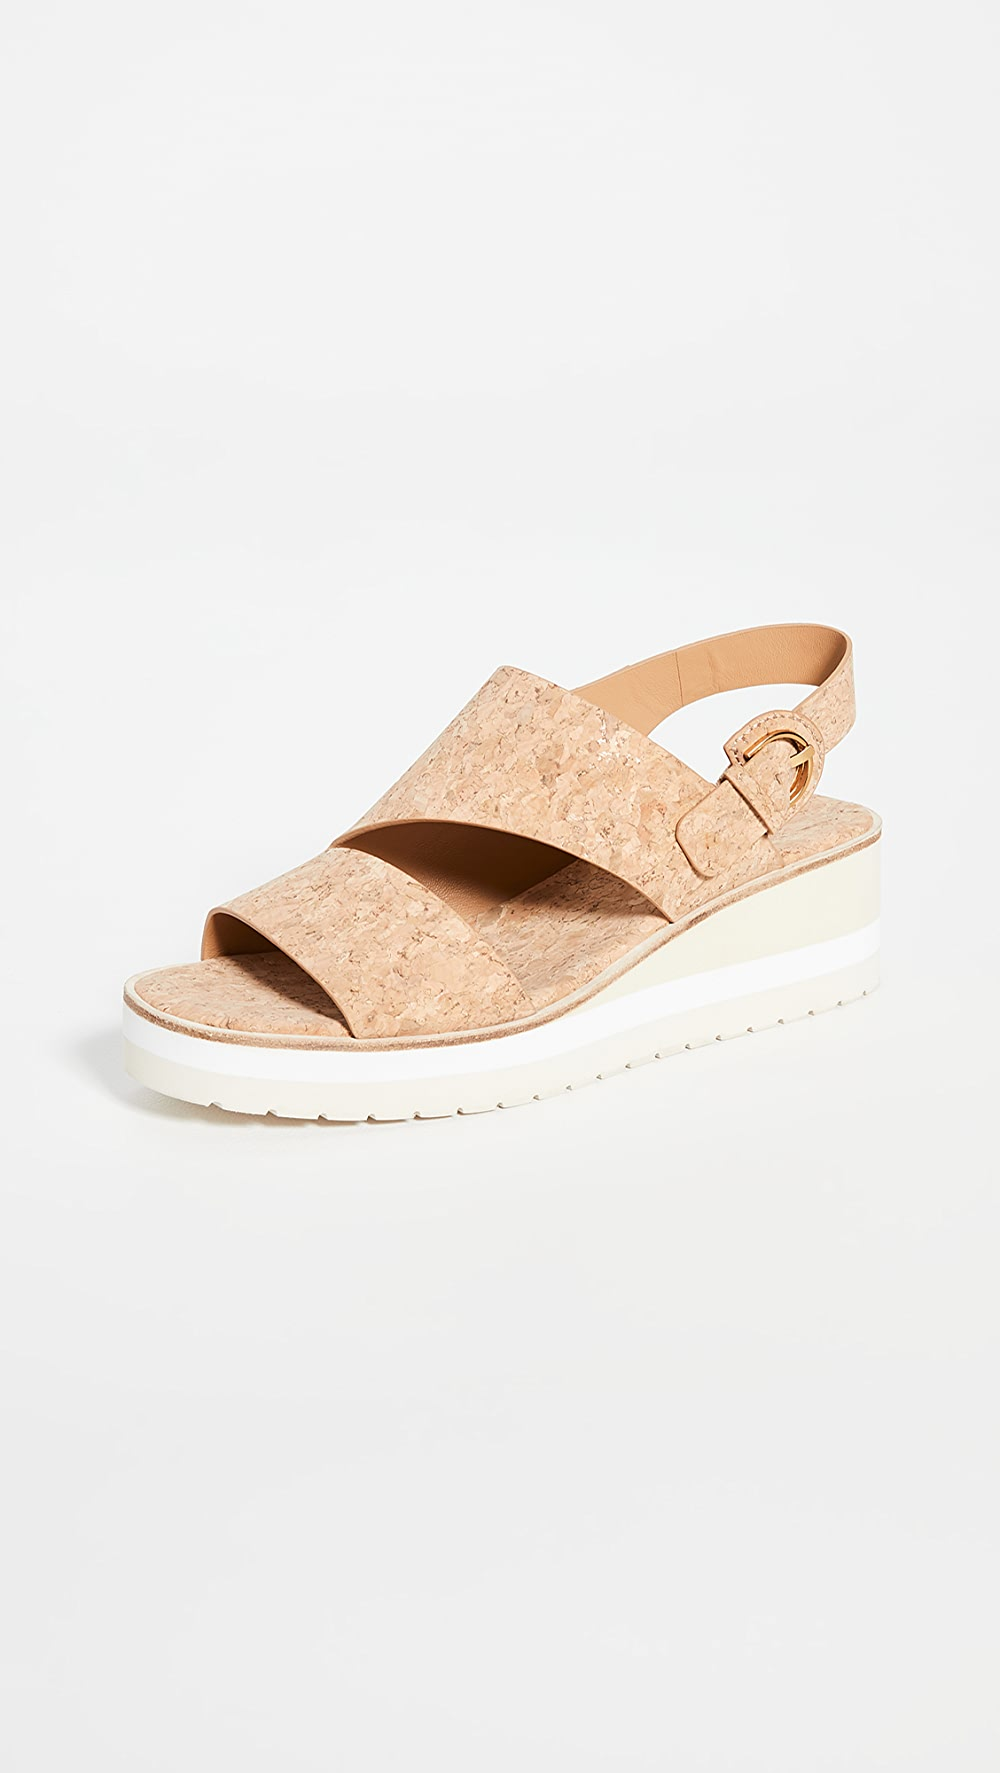 Generous Vince - Shelby Wedge Sandals Year-End Bargain Sale